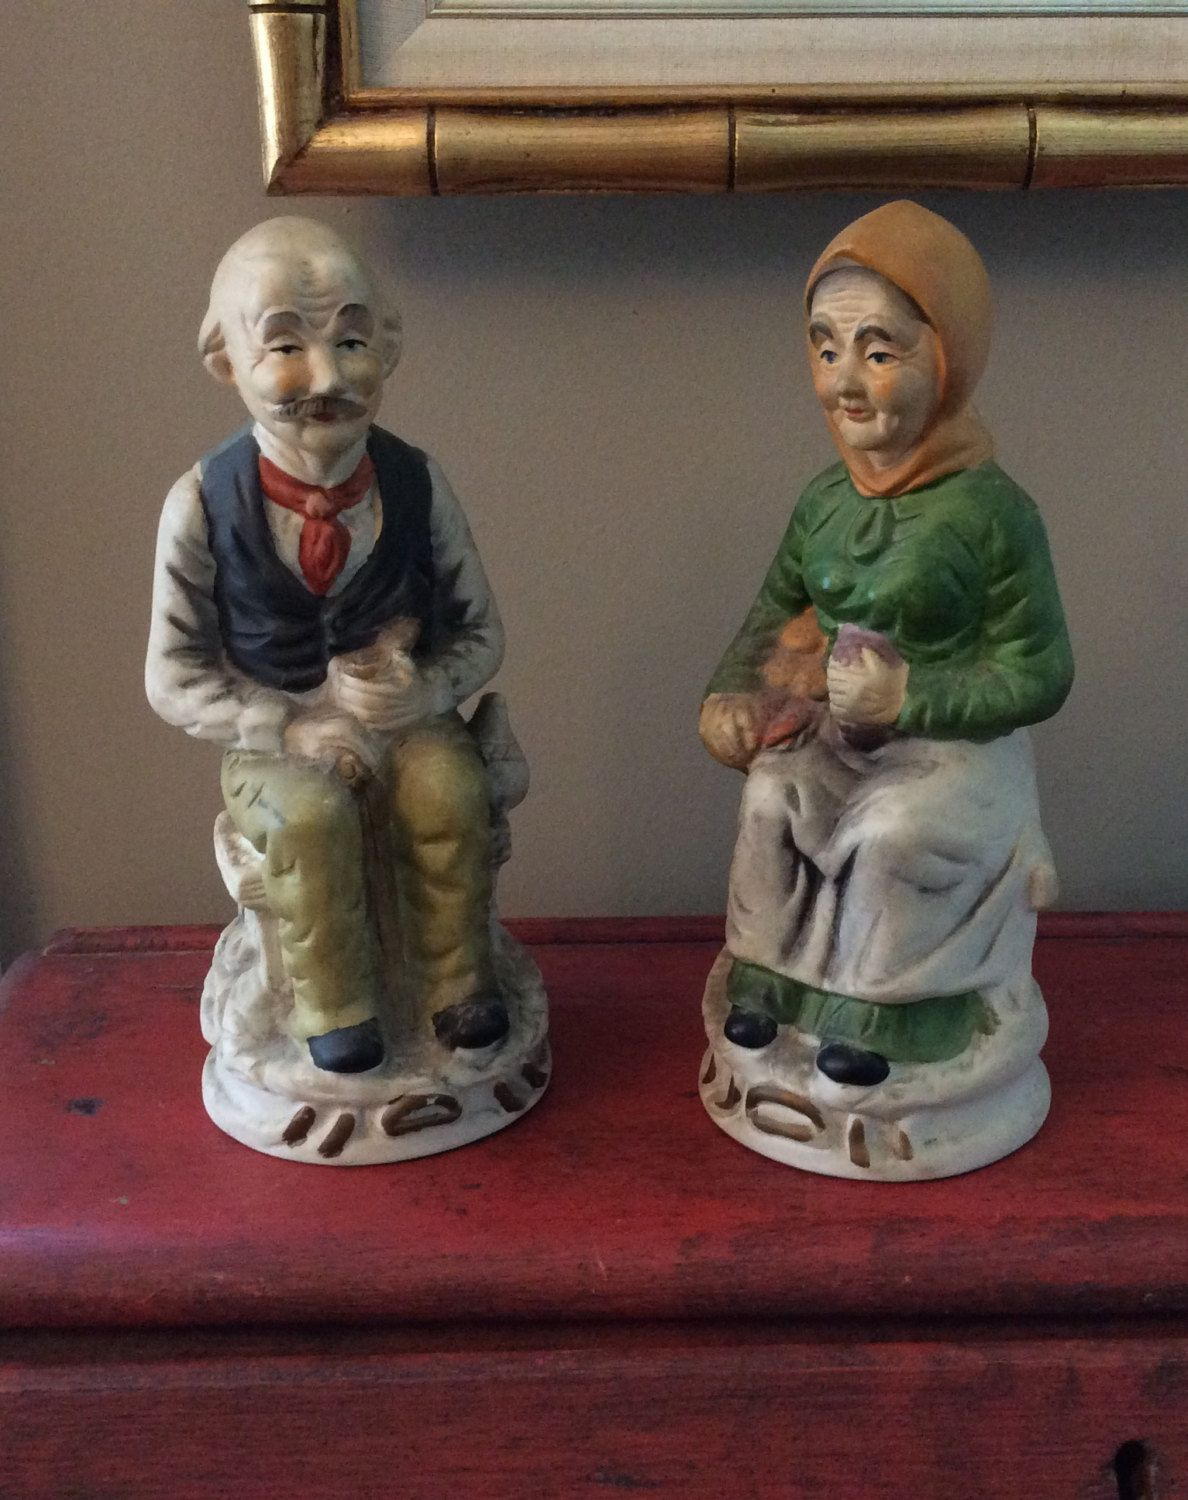 Sitting Old Man Lady Pair Porcelain Figurines Home Interiors